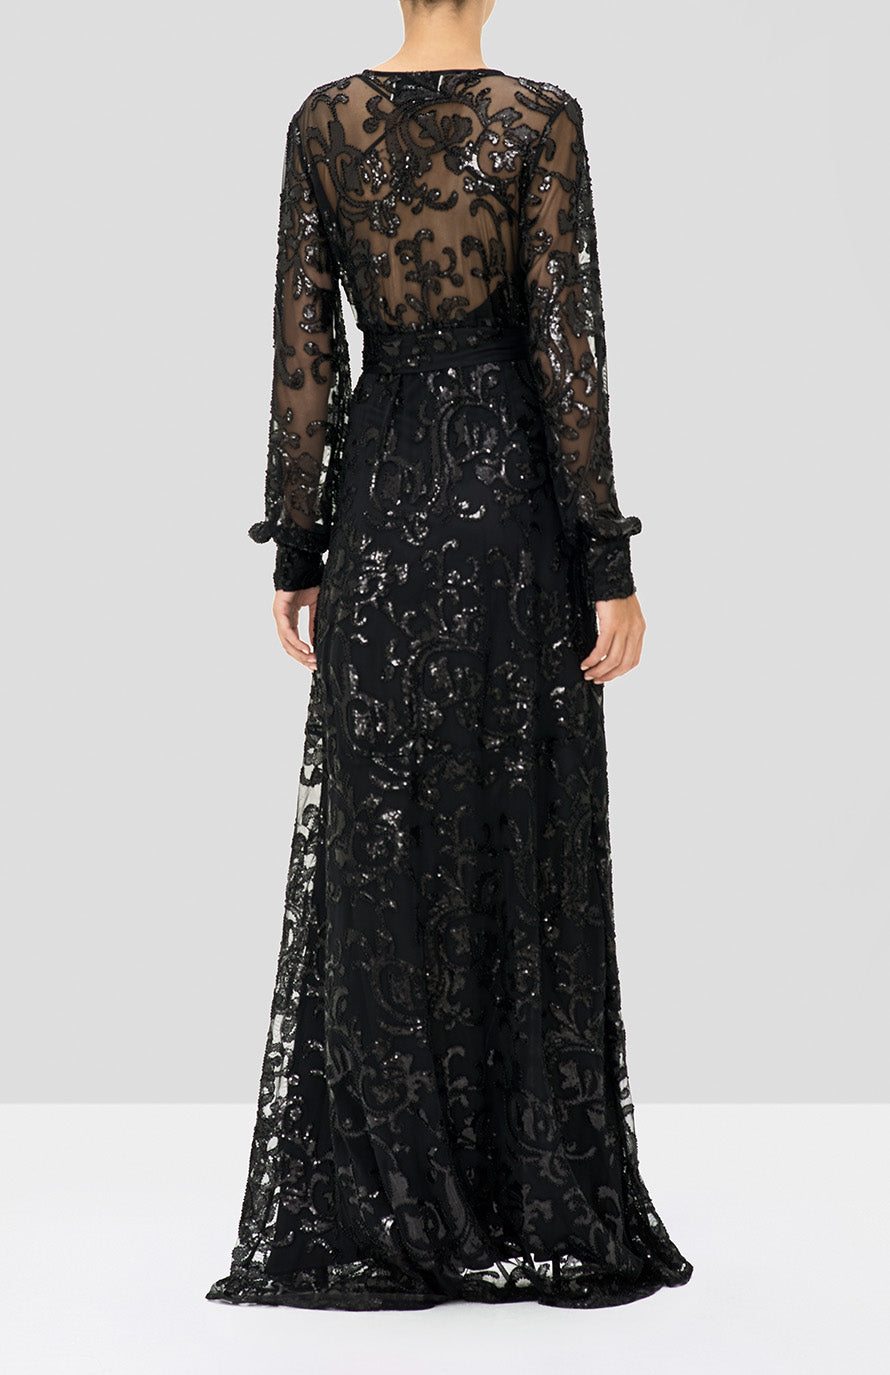 Alexis Biata Dress in Beaded Black from the Holiday 2019 Ready To Wear Collection - Rear View